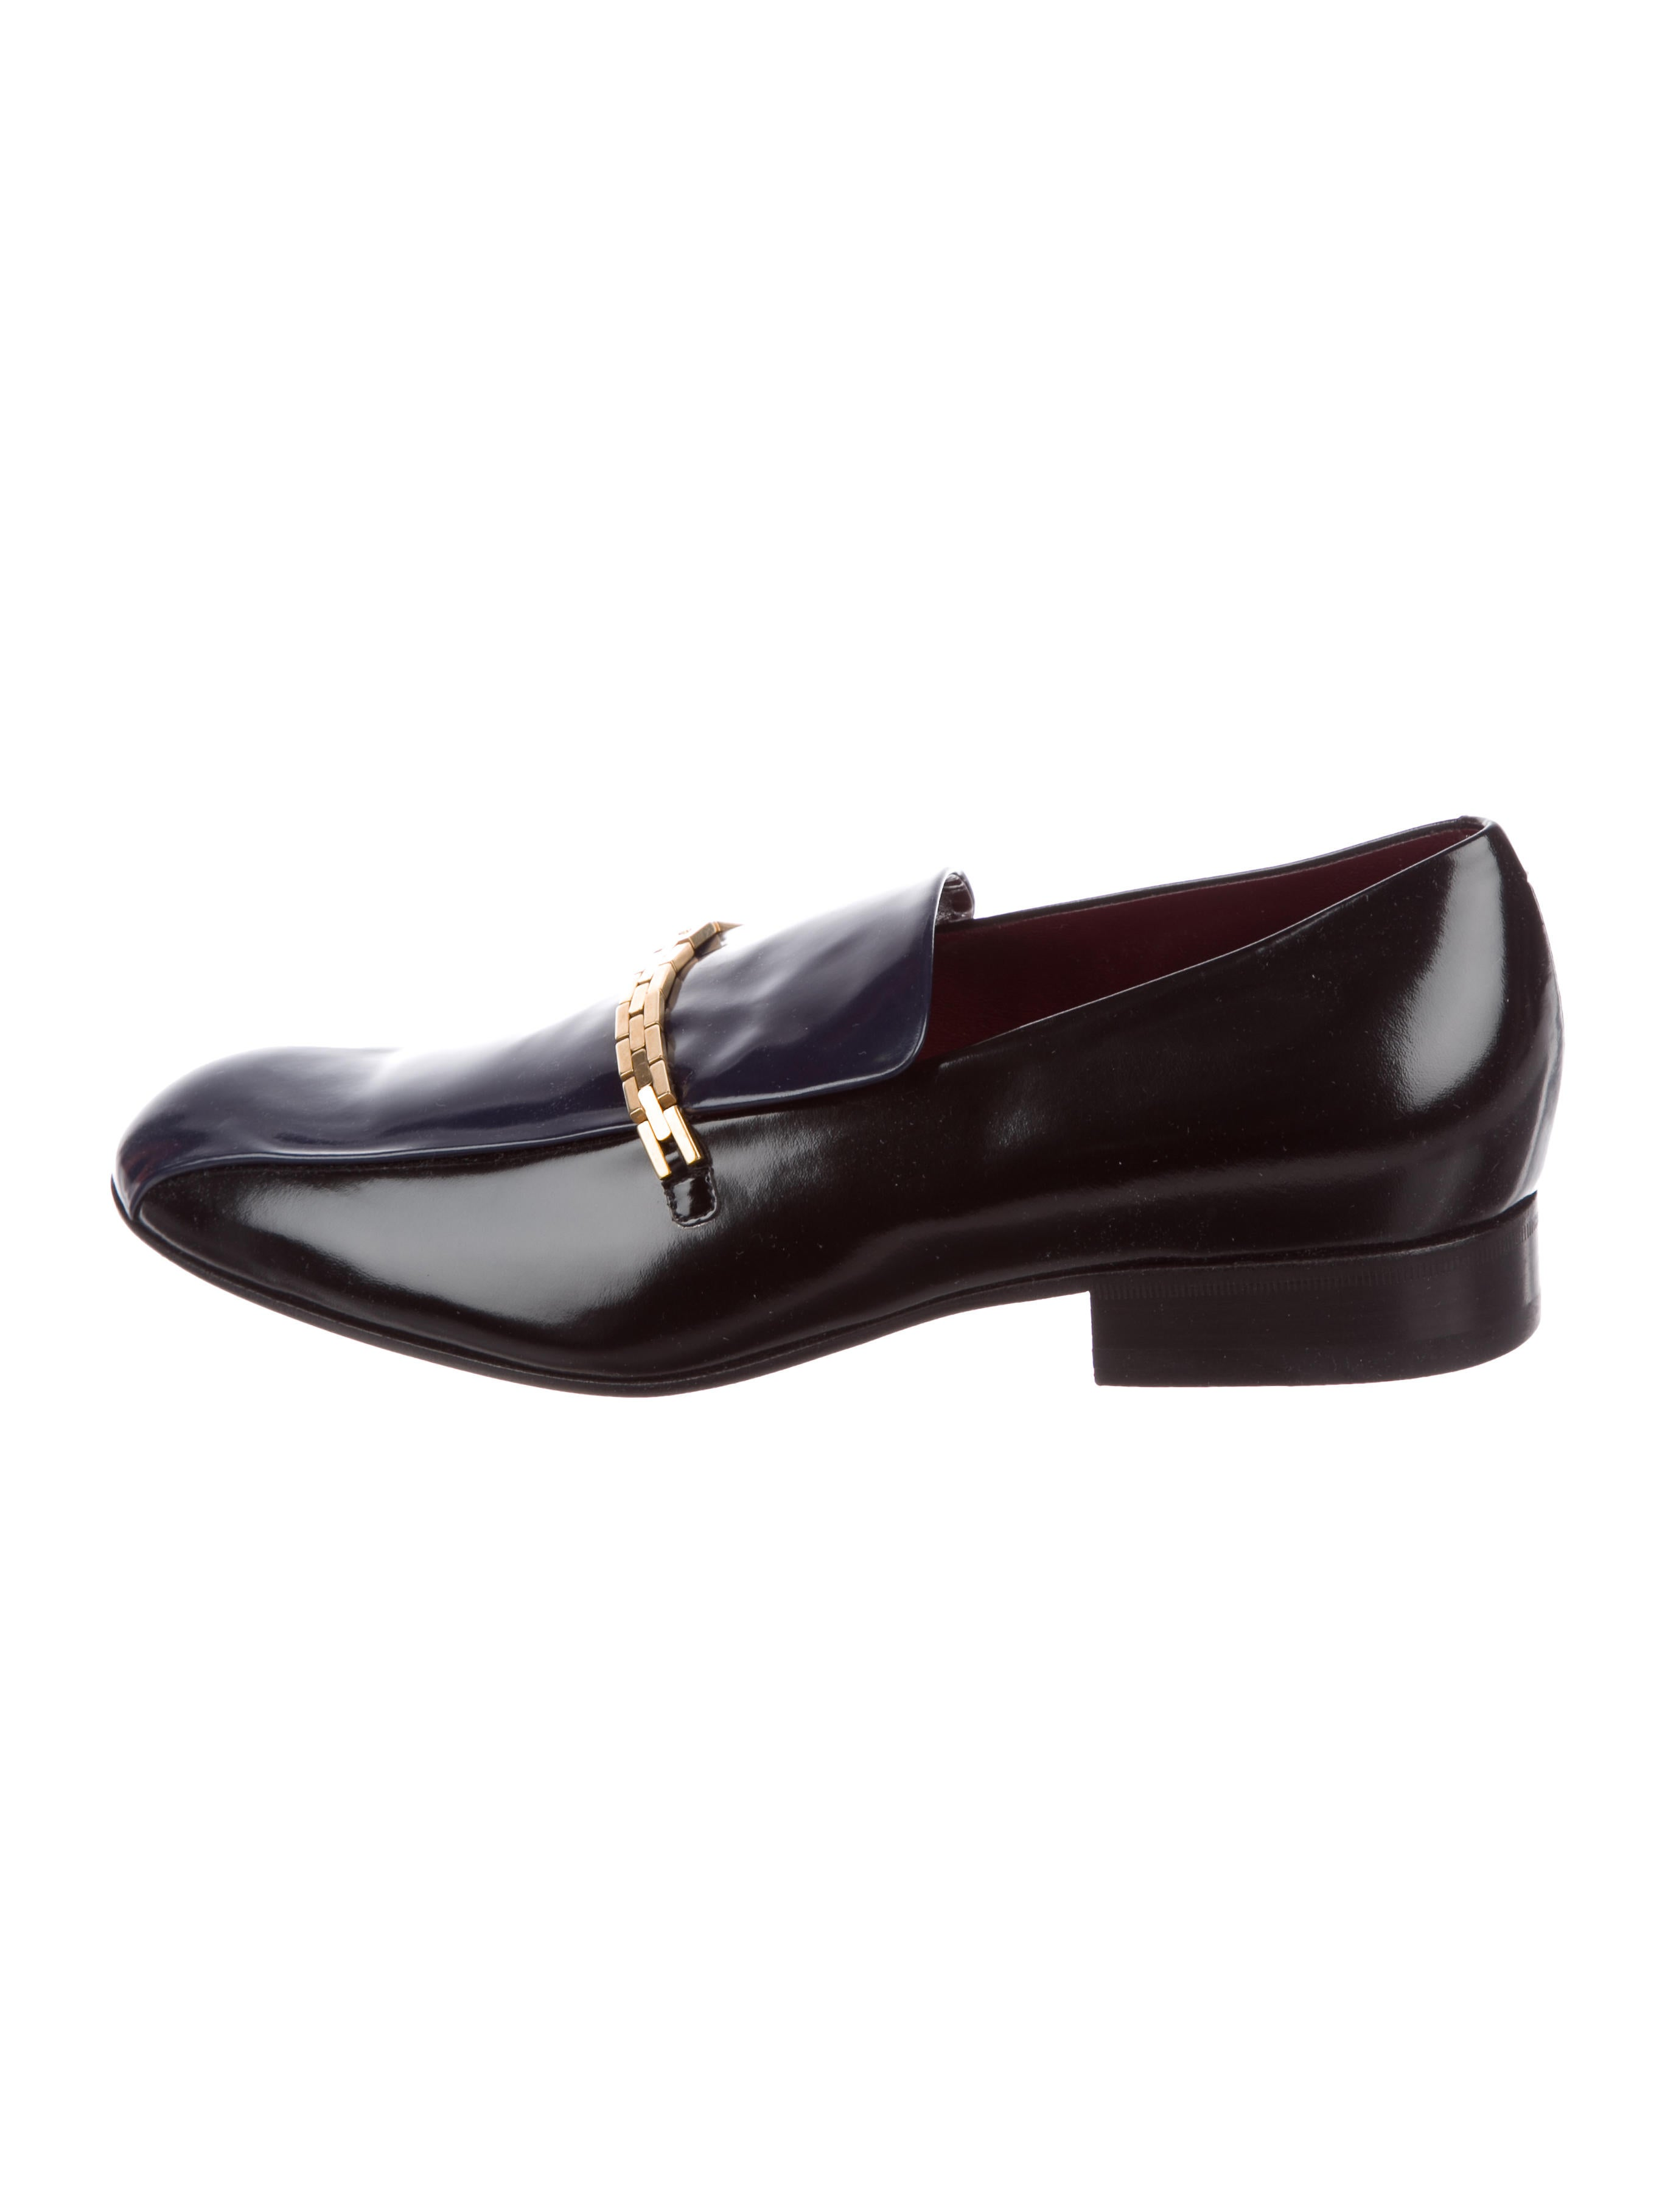 discount wide range of best wholesale cheap online Céline Leather Embellished Loafers pAYQlVVe